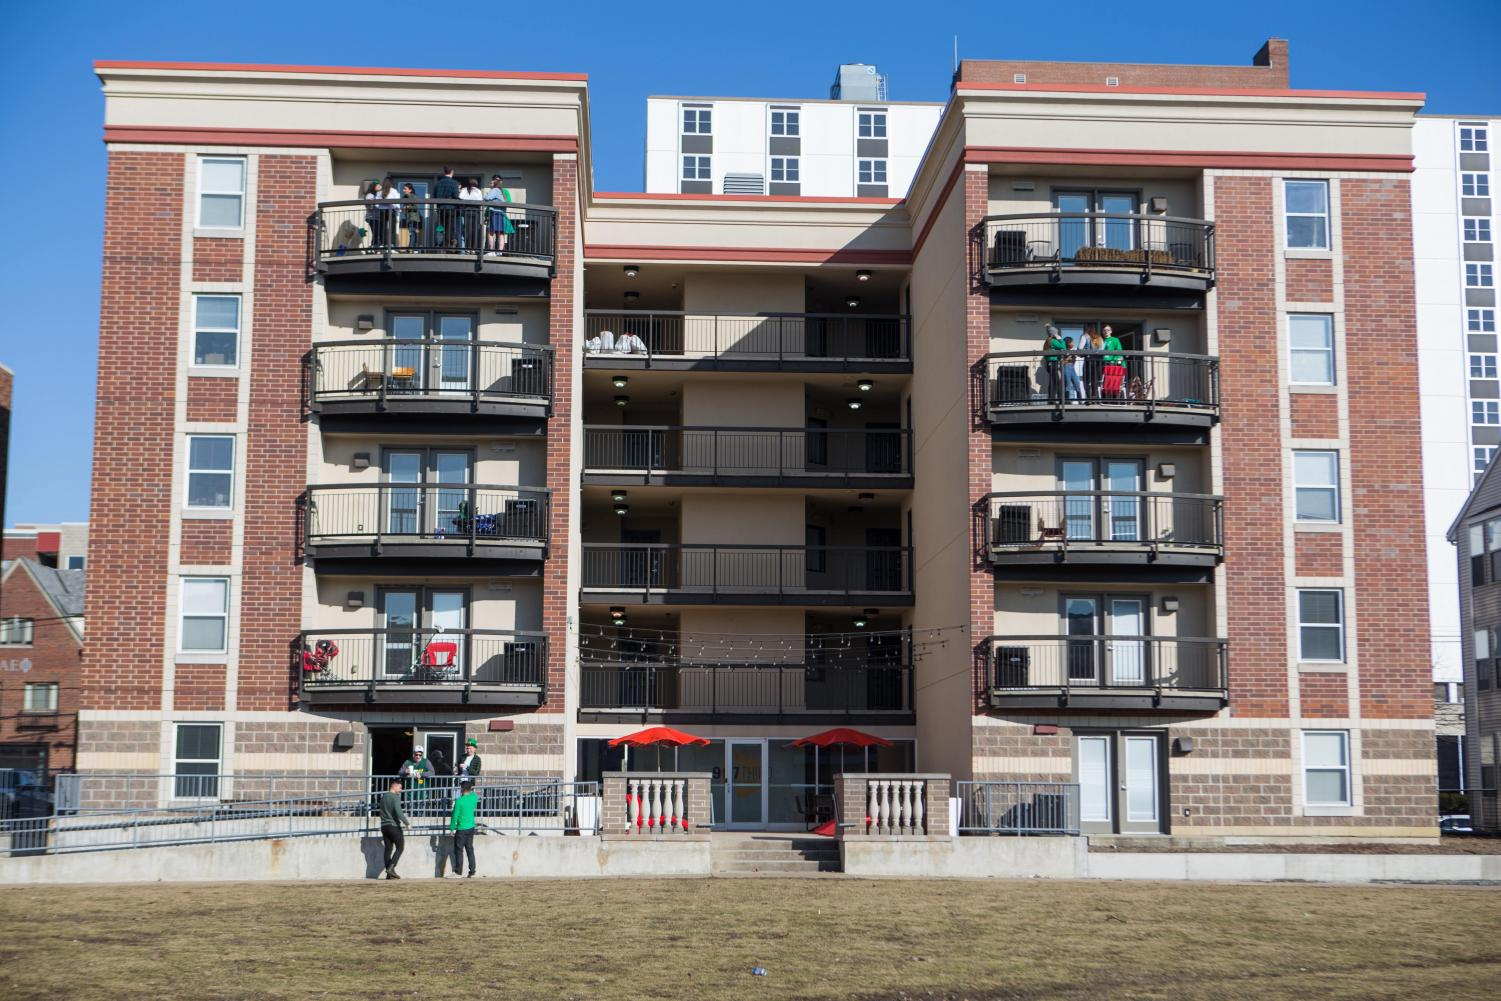 Participants+across+various+apartments+spend+time+on+balconies+celebrating+Unofficial+on+Friday.+Students+are+cautioned+ahead+of+time+not+to+overload+balconies+due+to+the+risk+of+collapse+caused+by+excessive+weight.